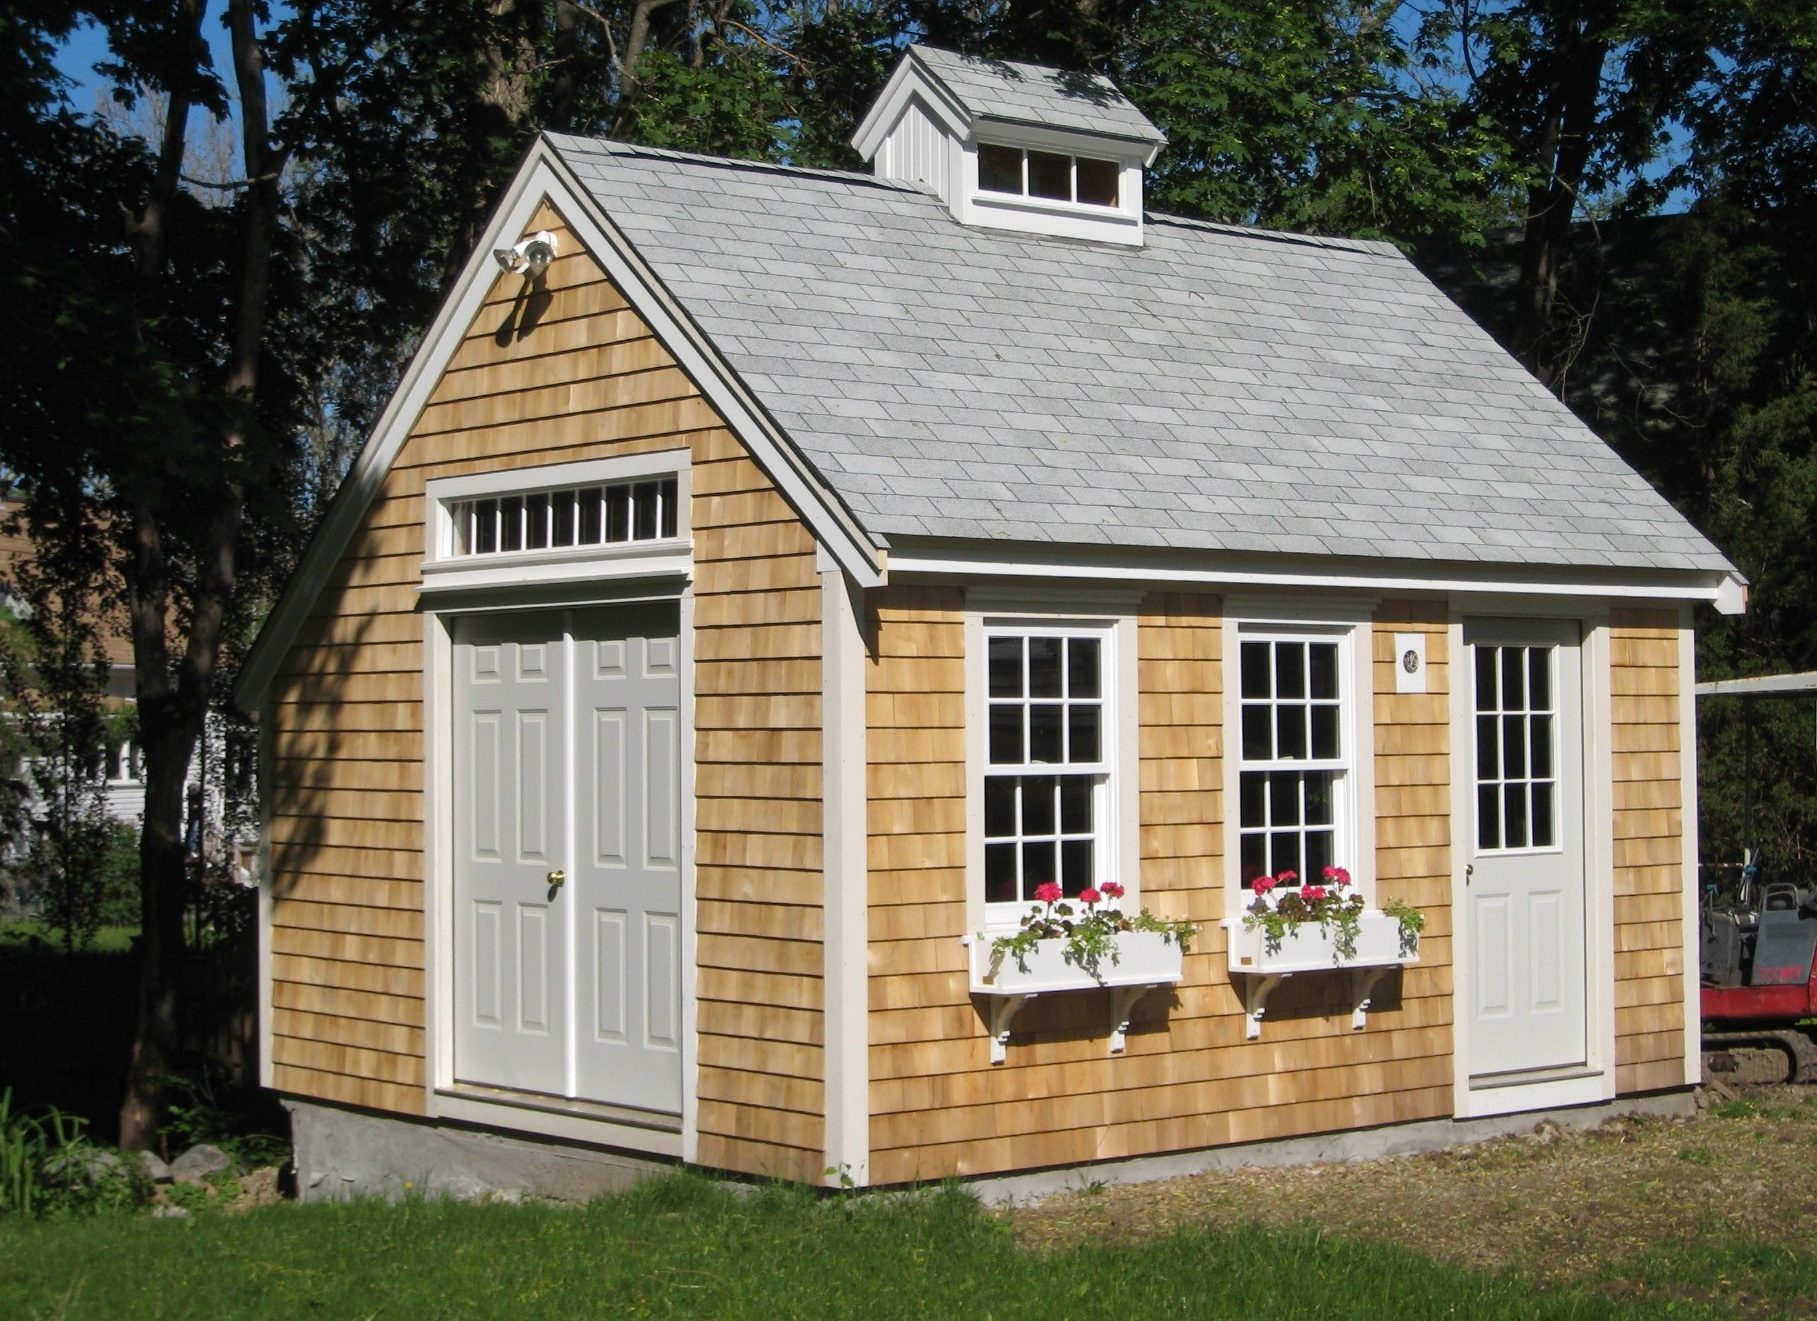 Fairytale backyards 30 magical garden sheds for Garden shed january sale